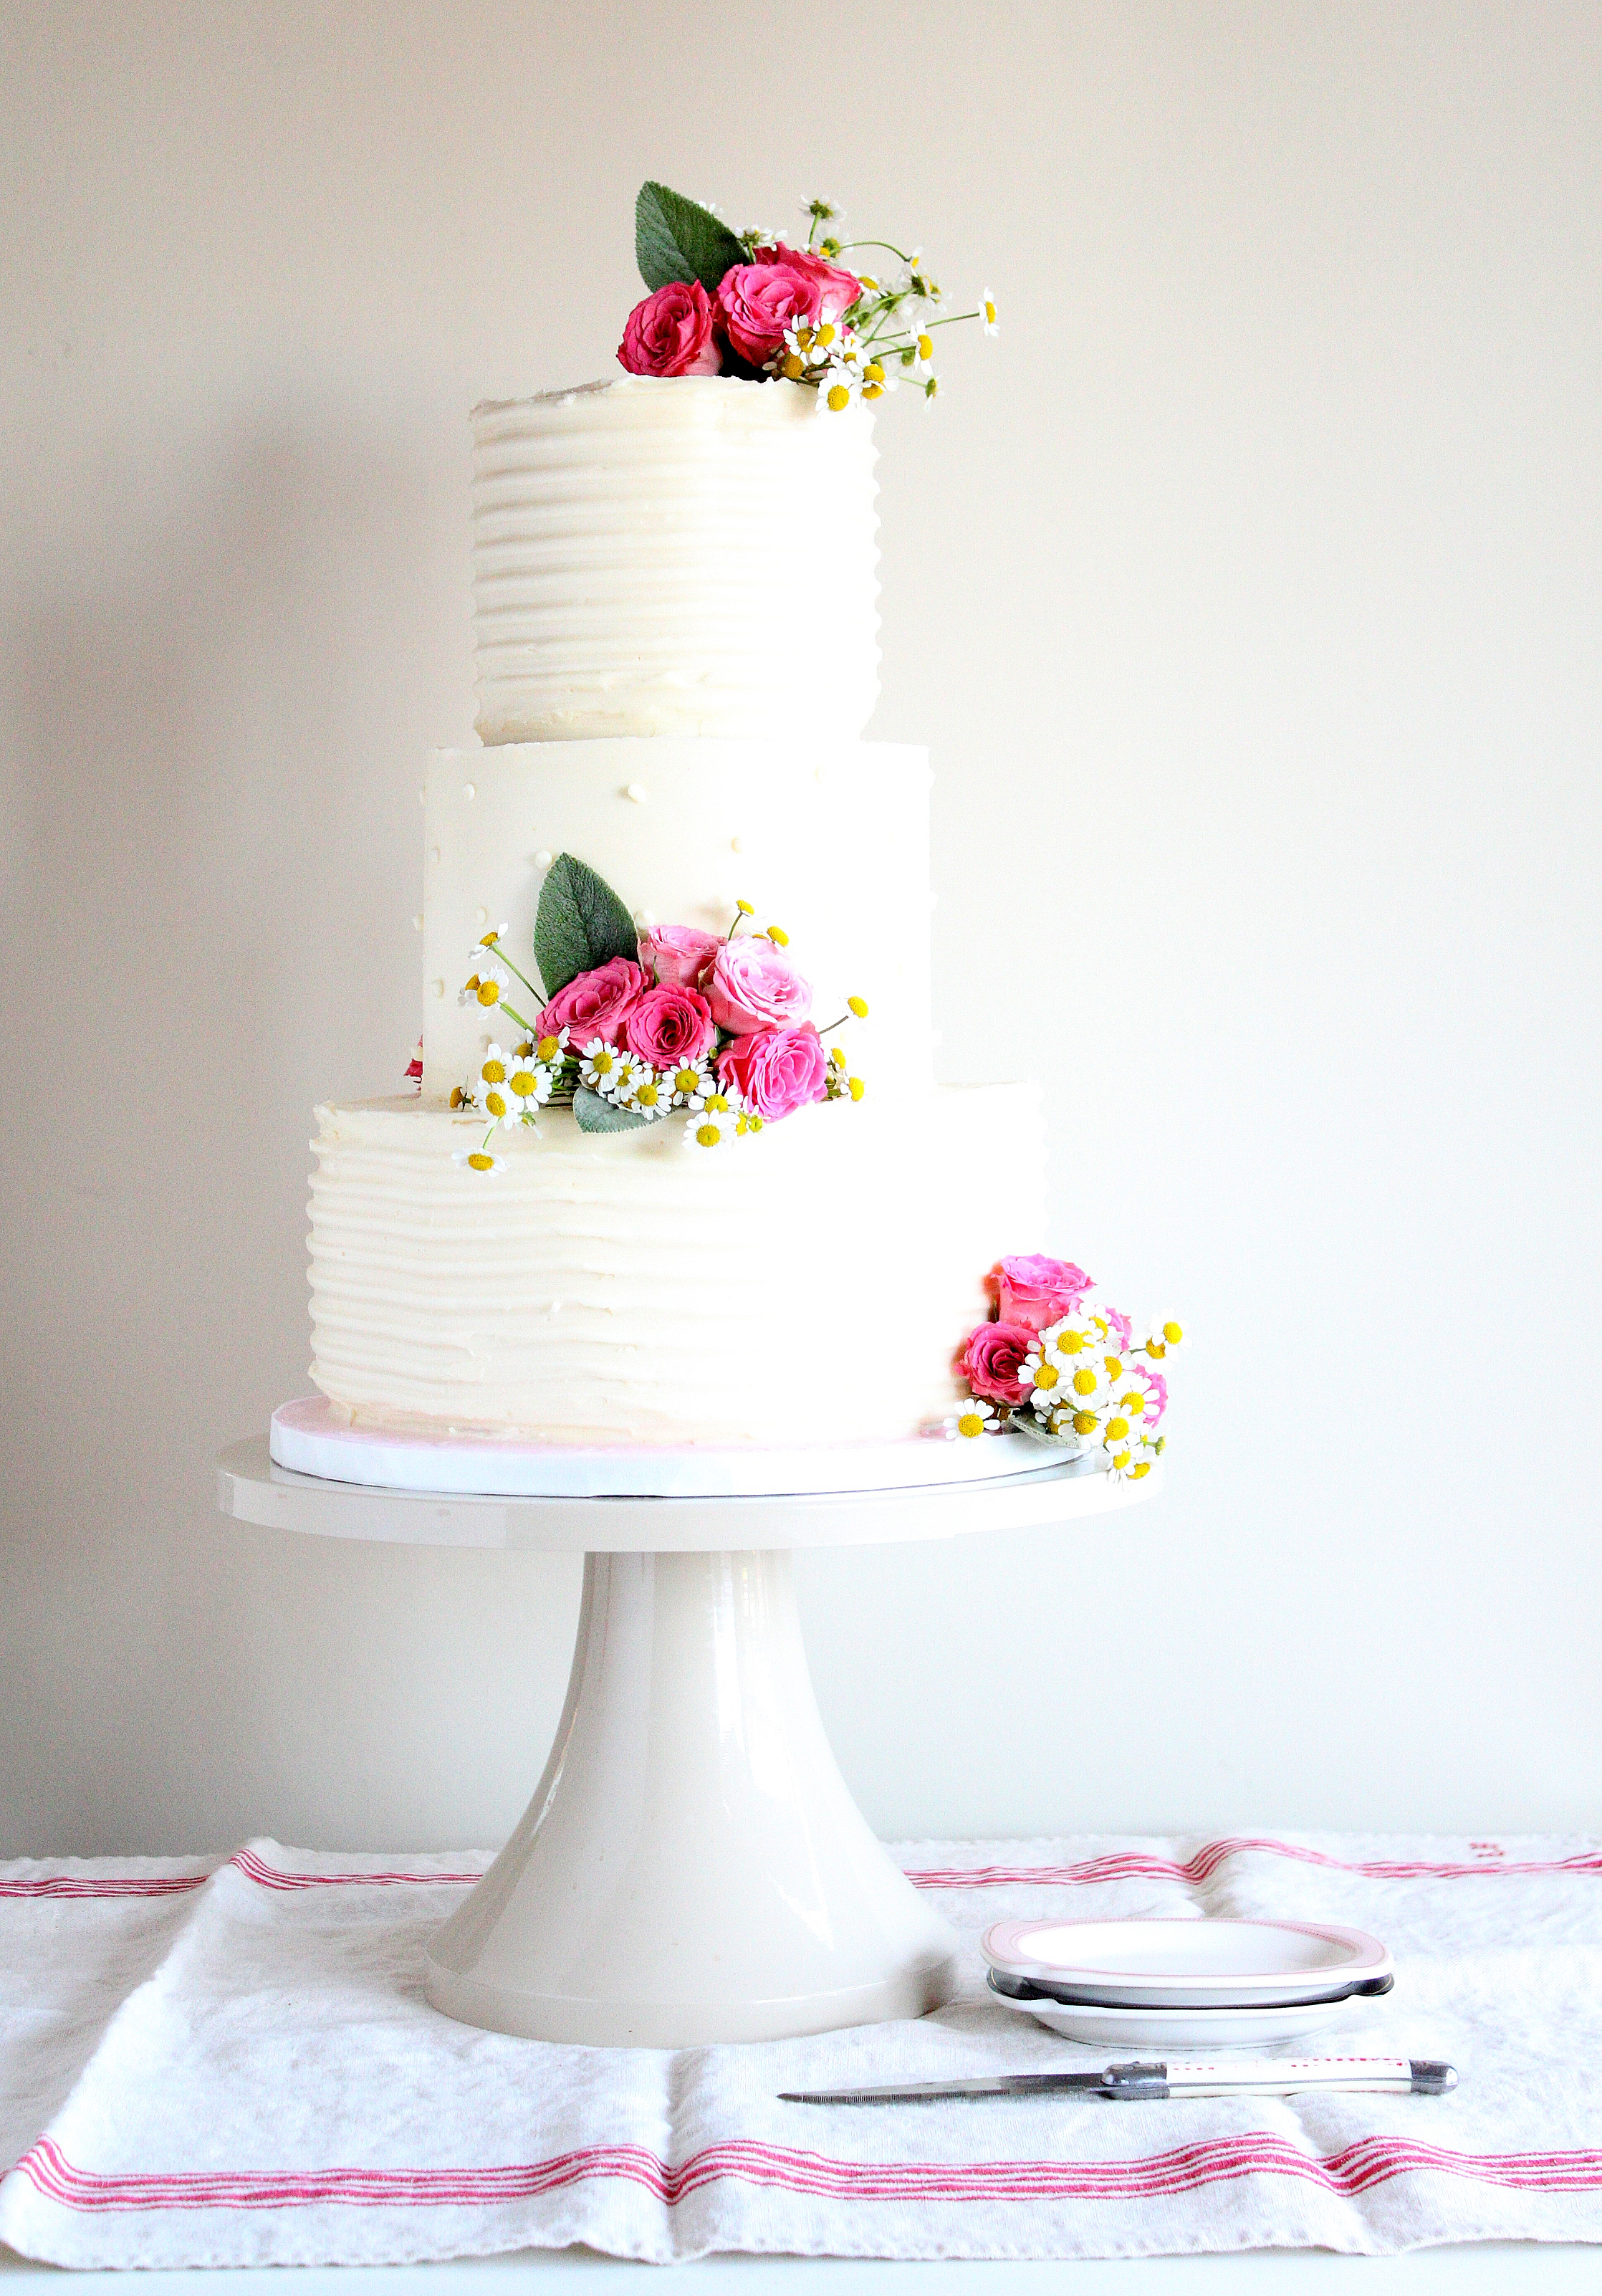 Vintage Romance Wedding Cake with pink roses, chamomile, and buttercream icing